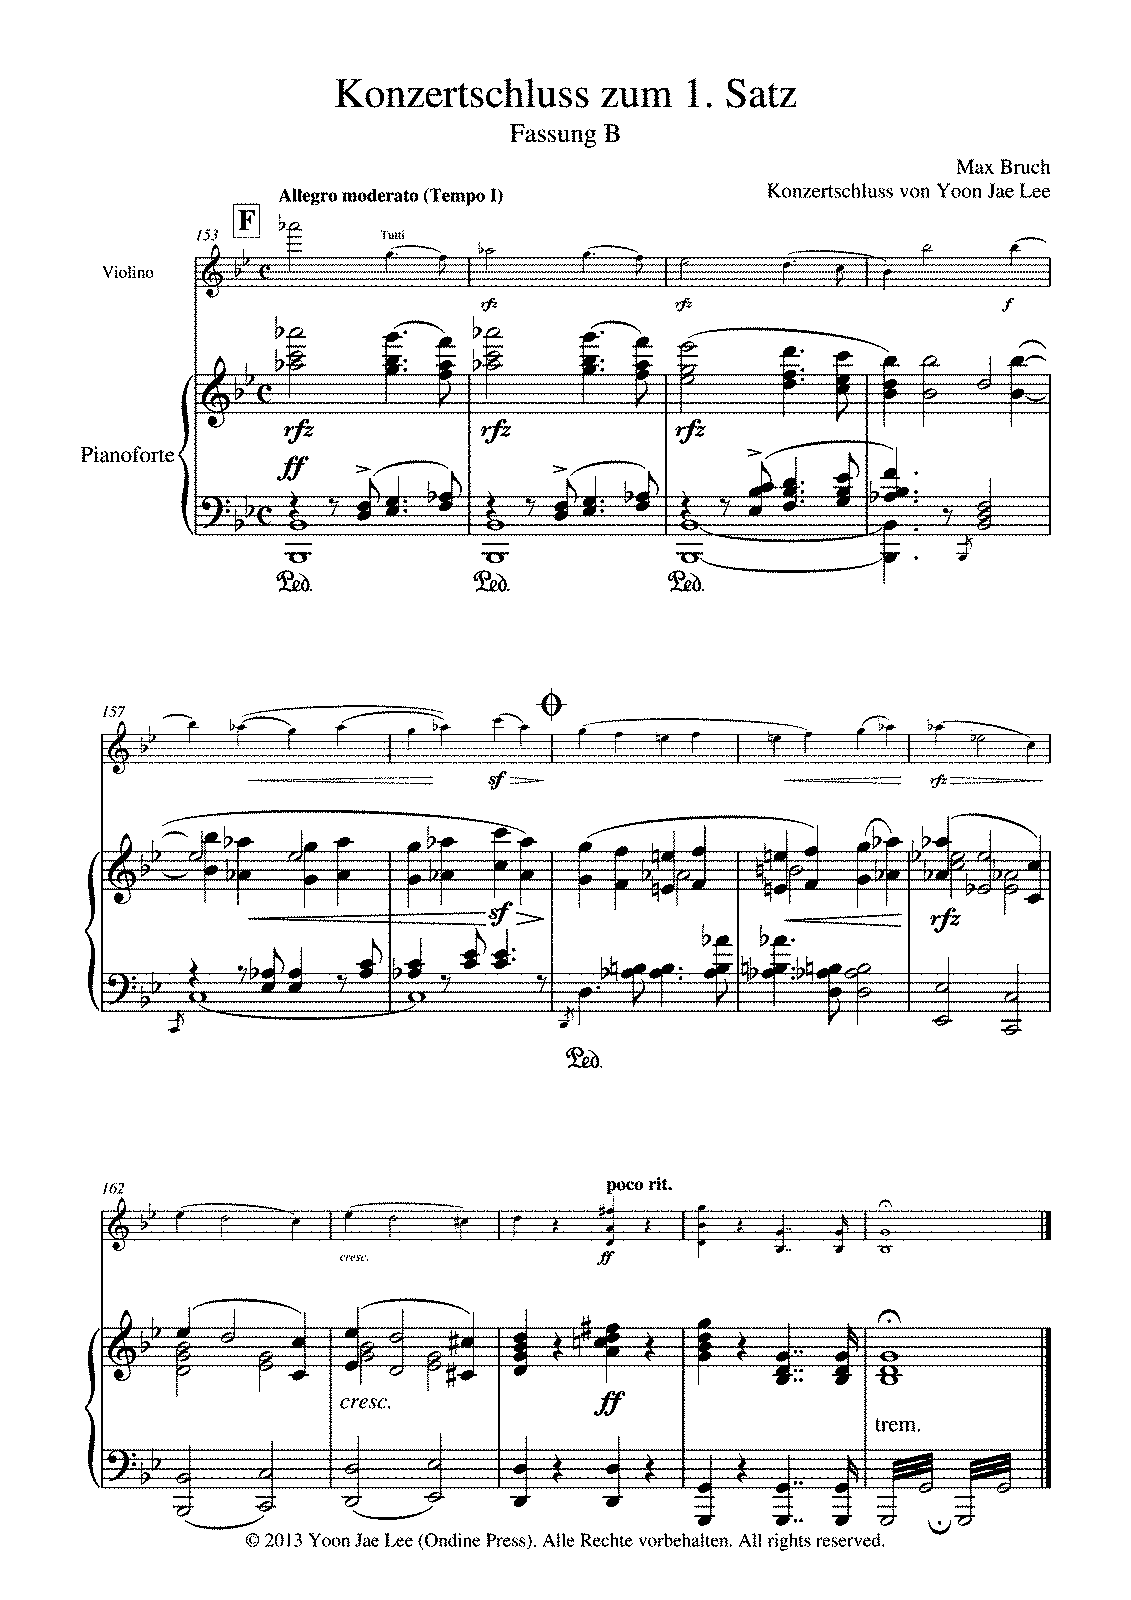 PMLP10695-Bruch, Max - Violin Concerto No. 1 in G Minor, Op. 25 Konzertschluss B Yoon Jae Lee.pdf